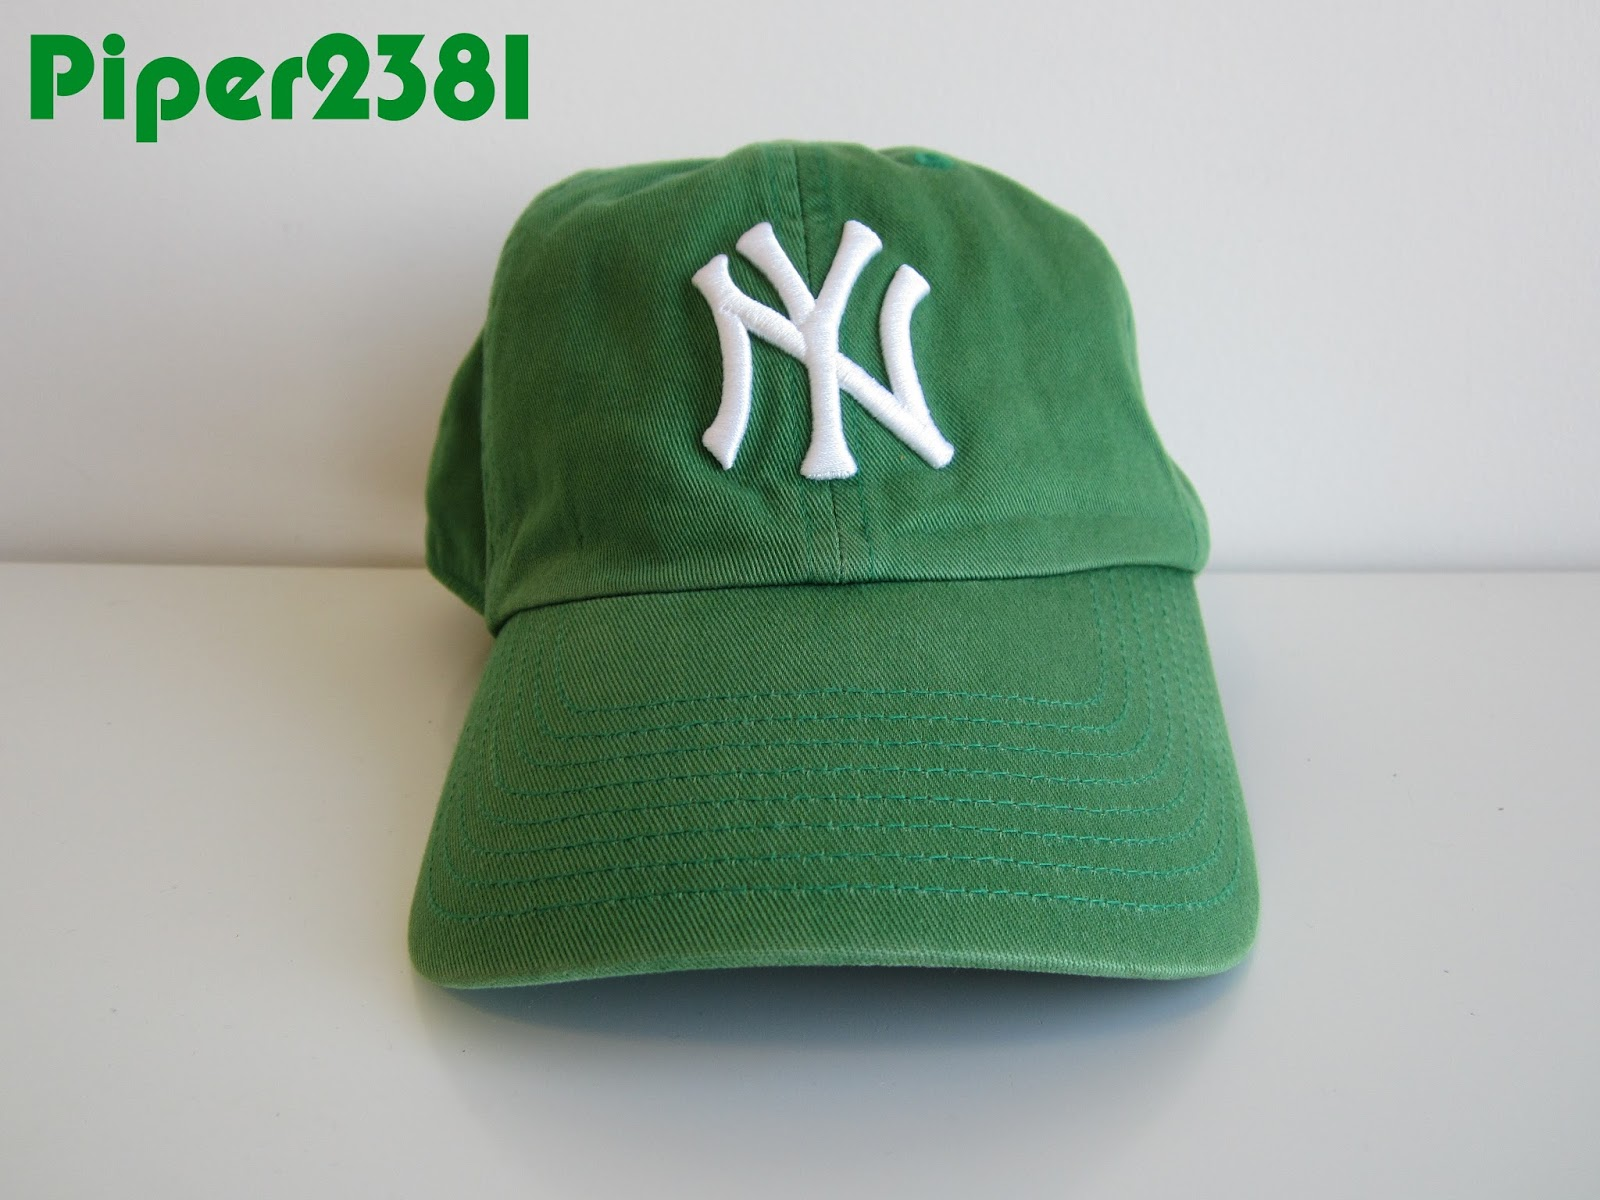 b1e537d0415 Happy St. Patrick s Day everyone! This is my green Yankees hat that I like  to wear every year around St. Patrick s Day. Besides the Kelly green  colorway it ...